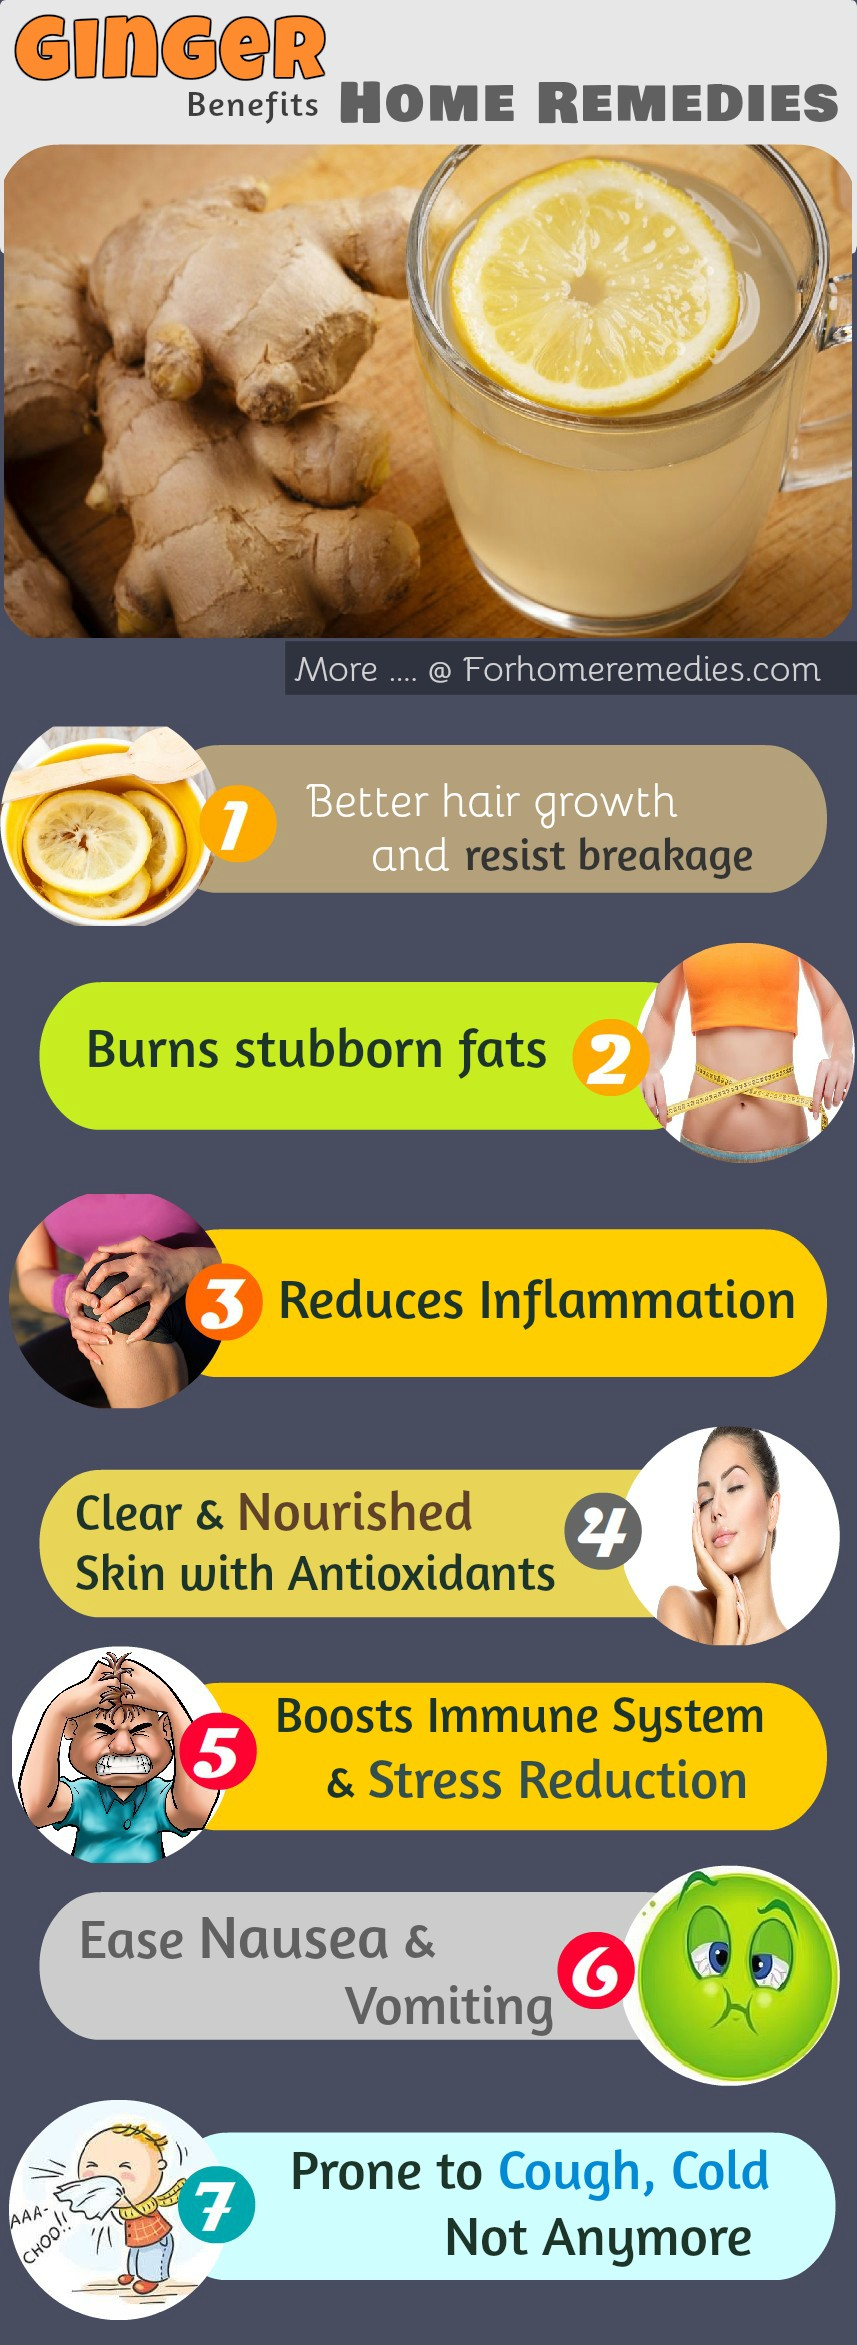 Ginger Home remedies and benefits of ginger